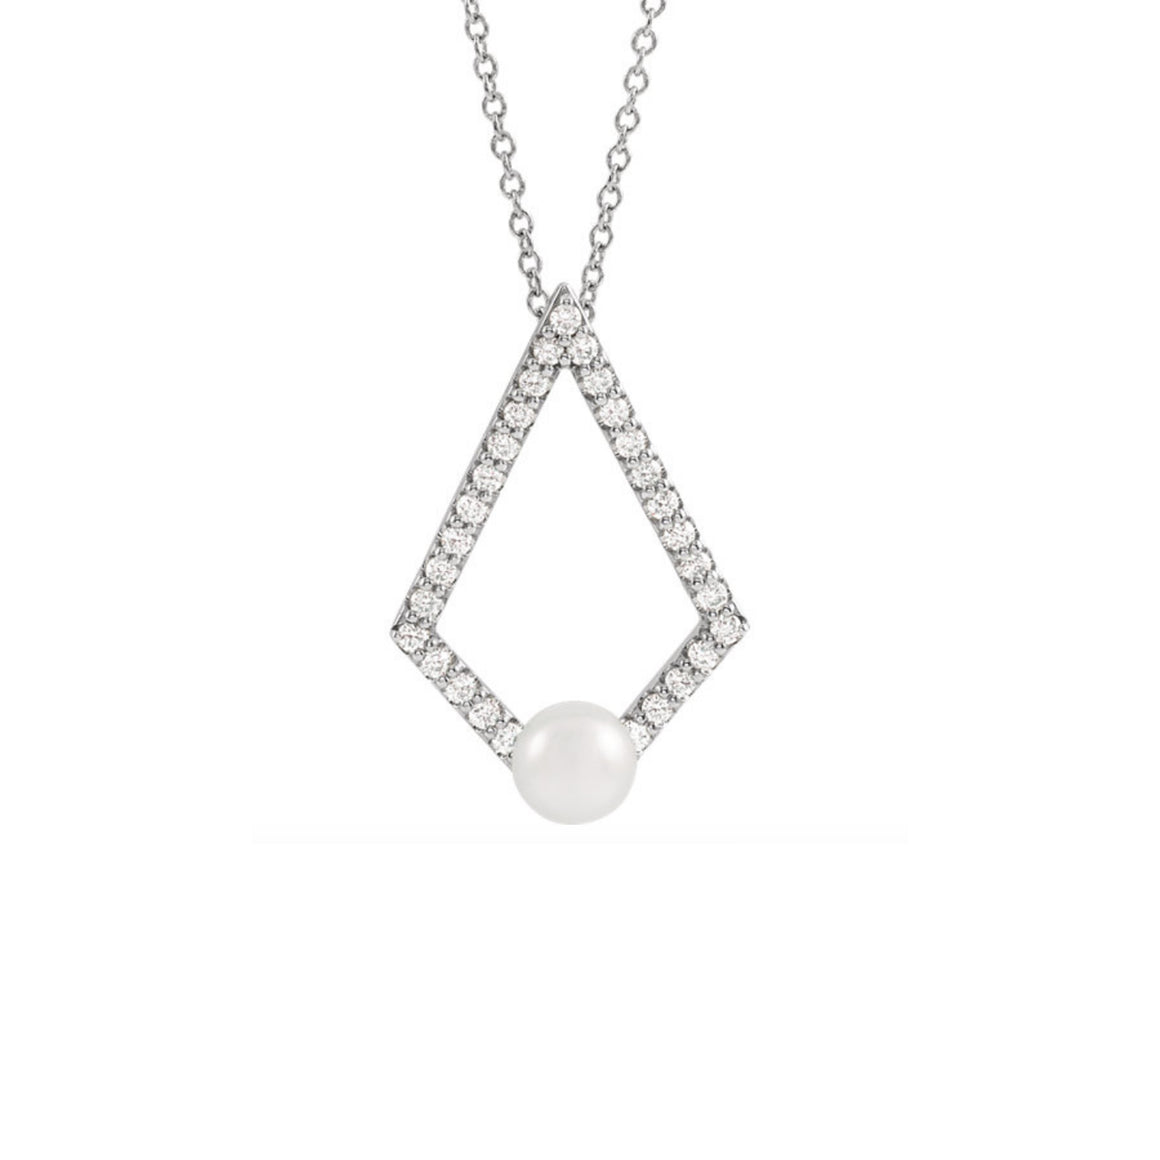 14k Gold Pearl and Diamond Geometric Necklace - Talisman Collection Fine Jewelers